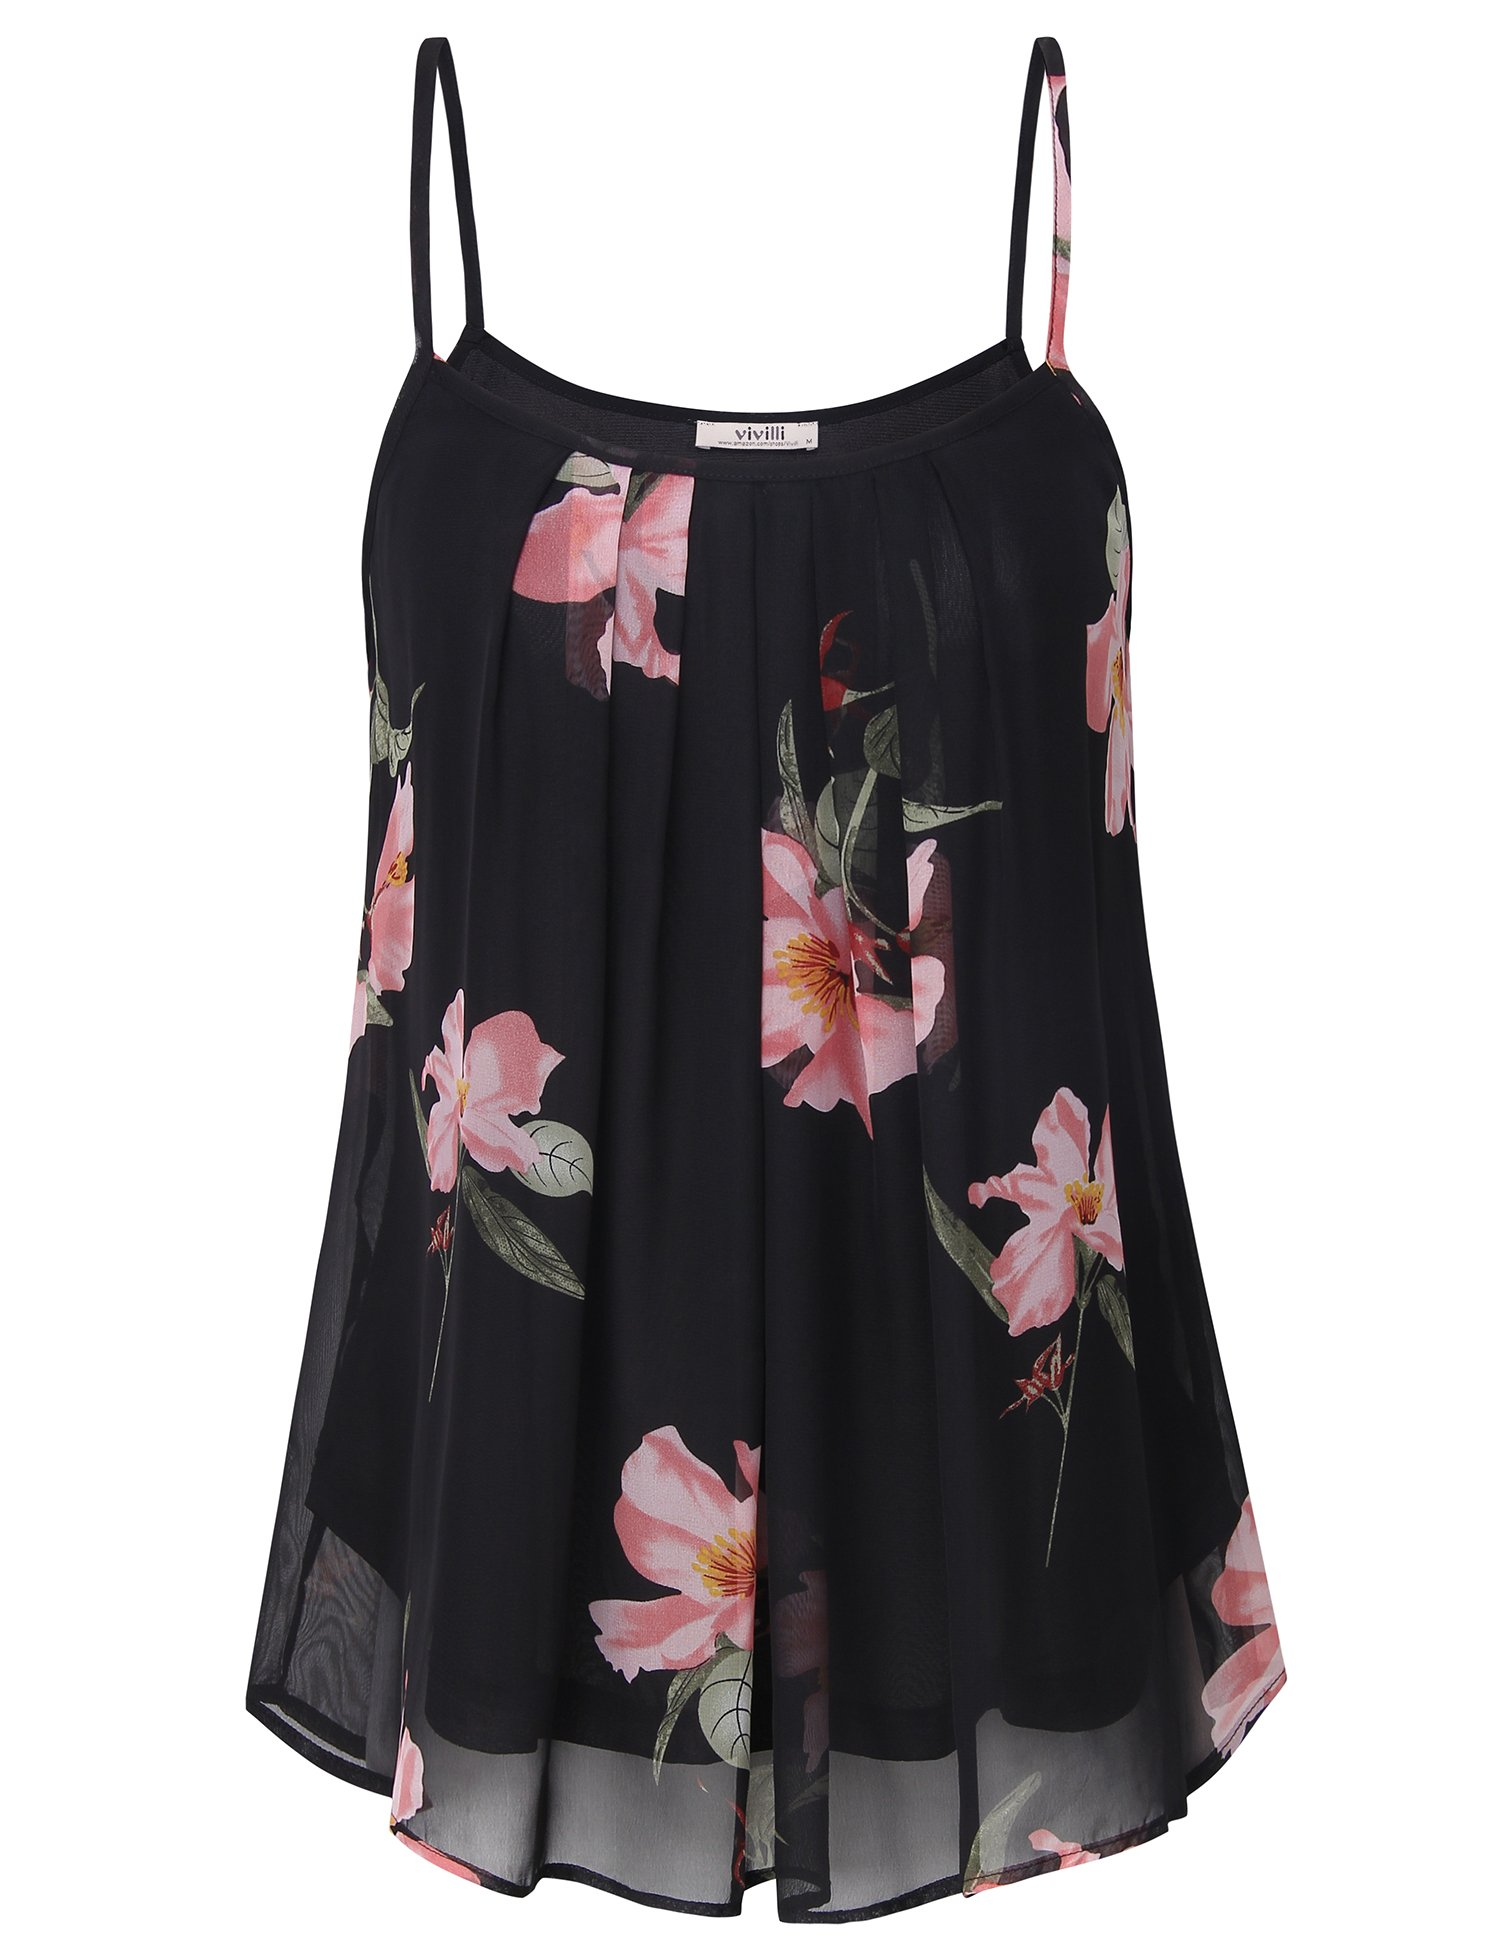 Vivilli Women's Summer Floral Cool Casual Sleeveless Pleated Chiffon Layered Cami Tank Top, A-line Camisole Tank Top Medium Black.